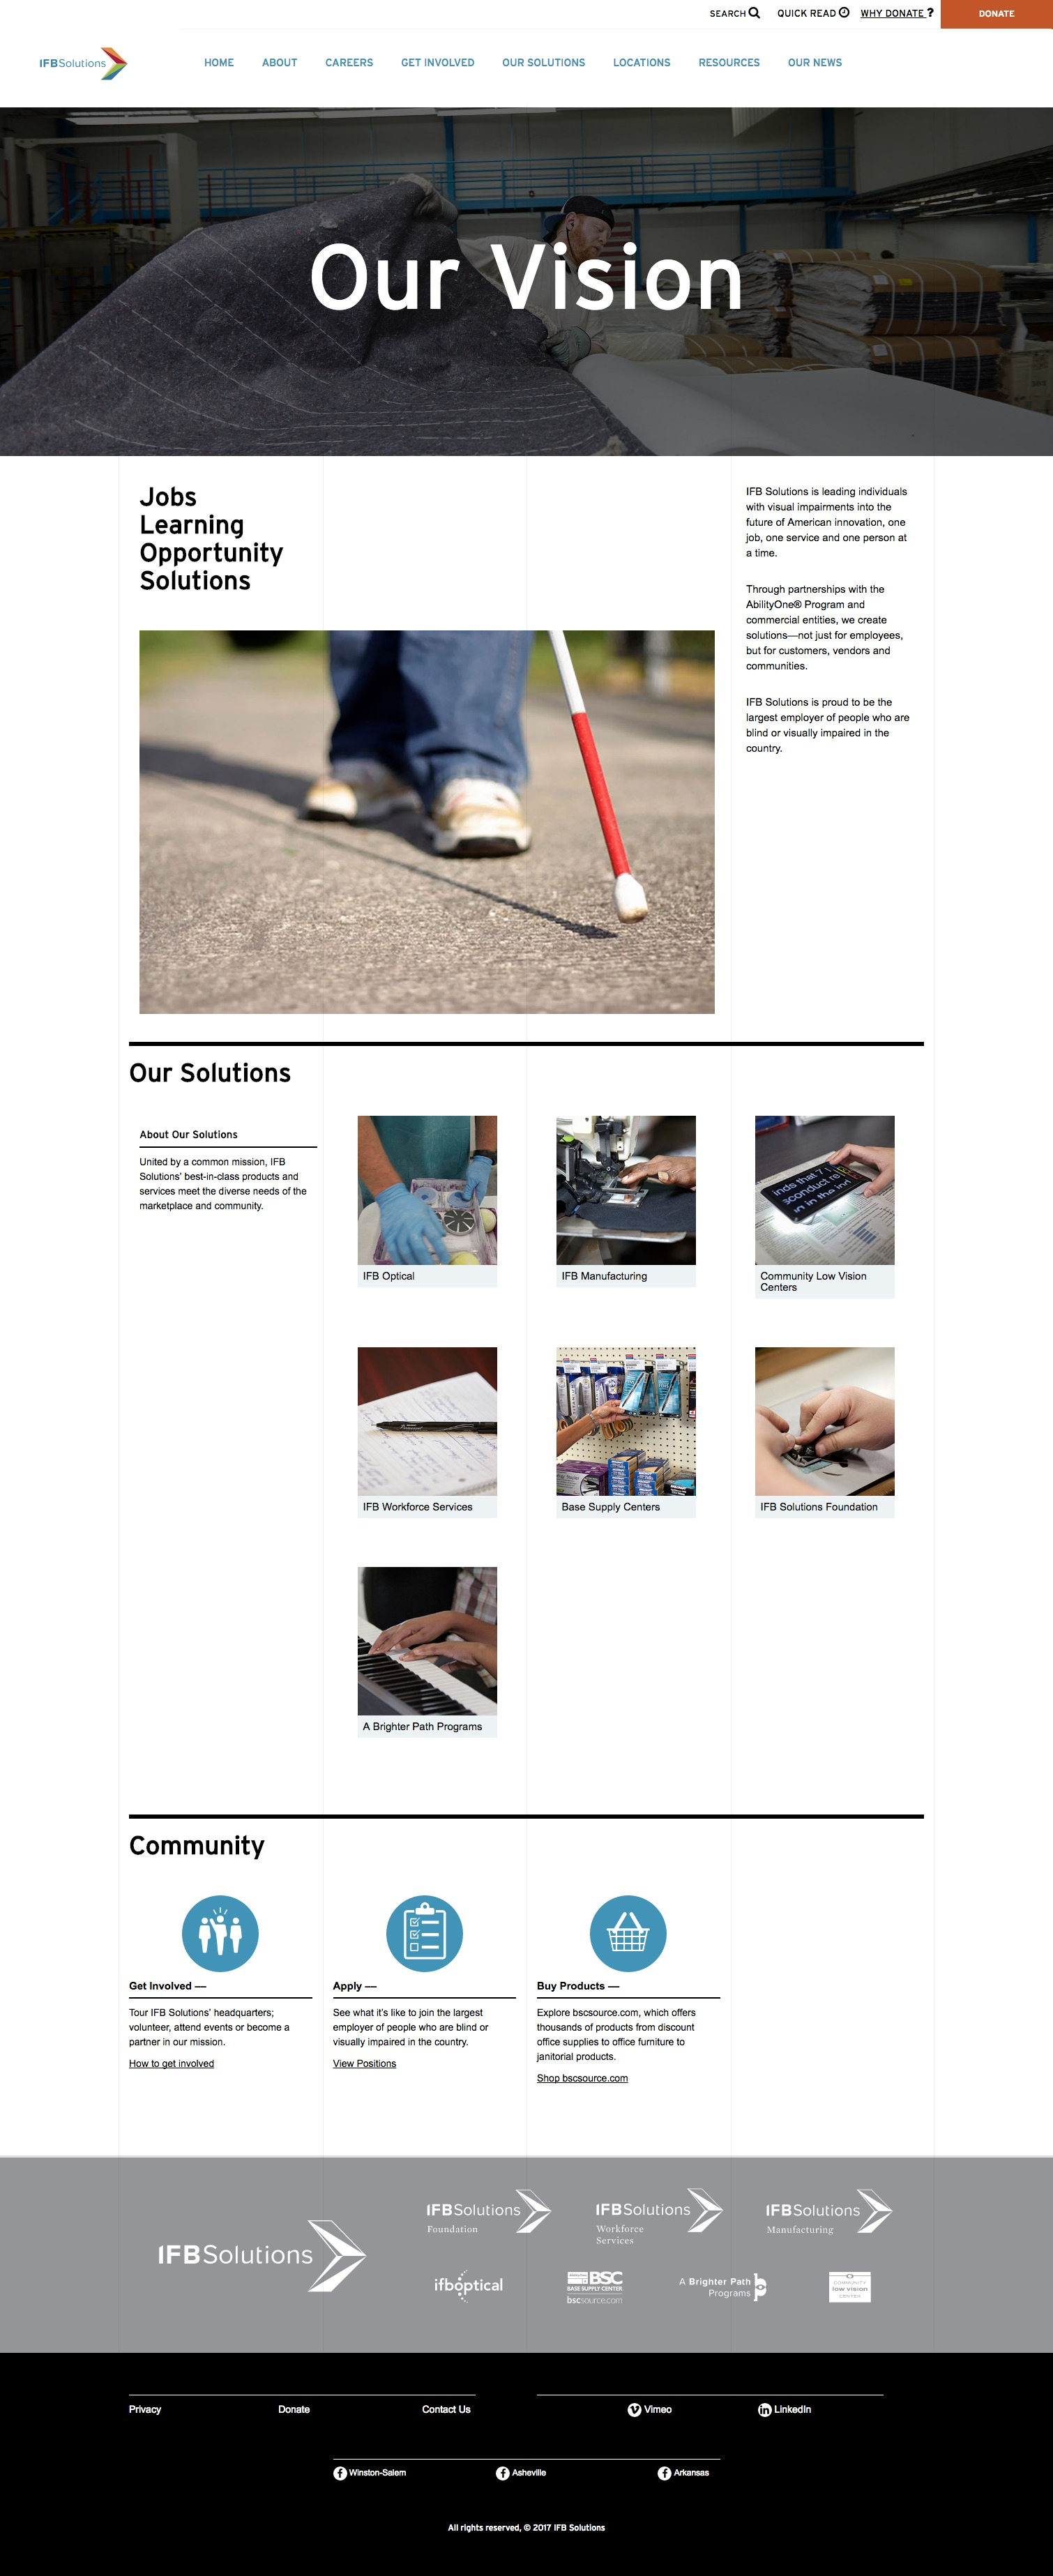 IFB Solutions Home Page